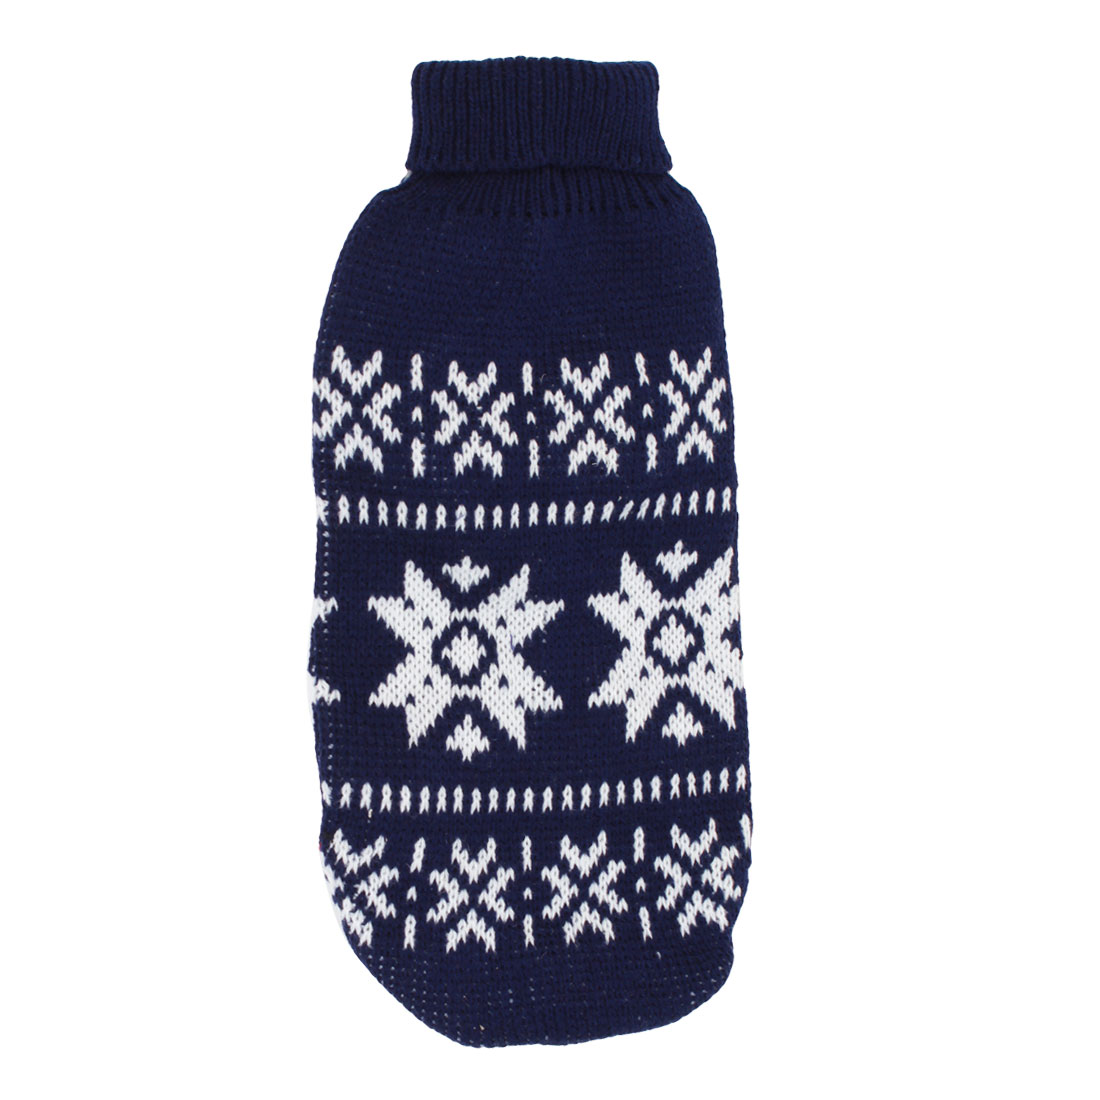 Pet Dog Puppy Ribbed Cuff Knitwear Turtleneck Apparel Sweater Dark Blue White Size S